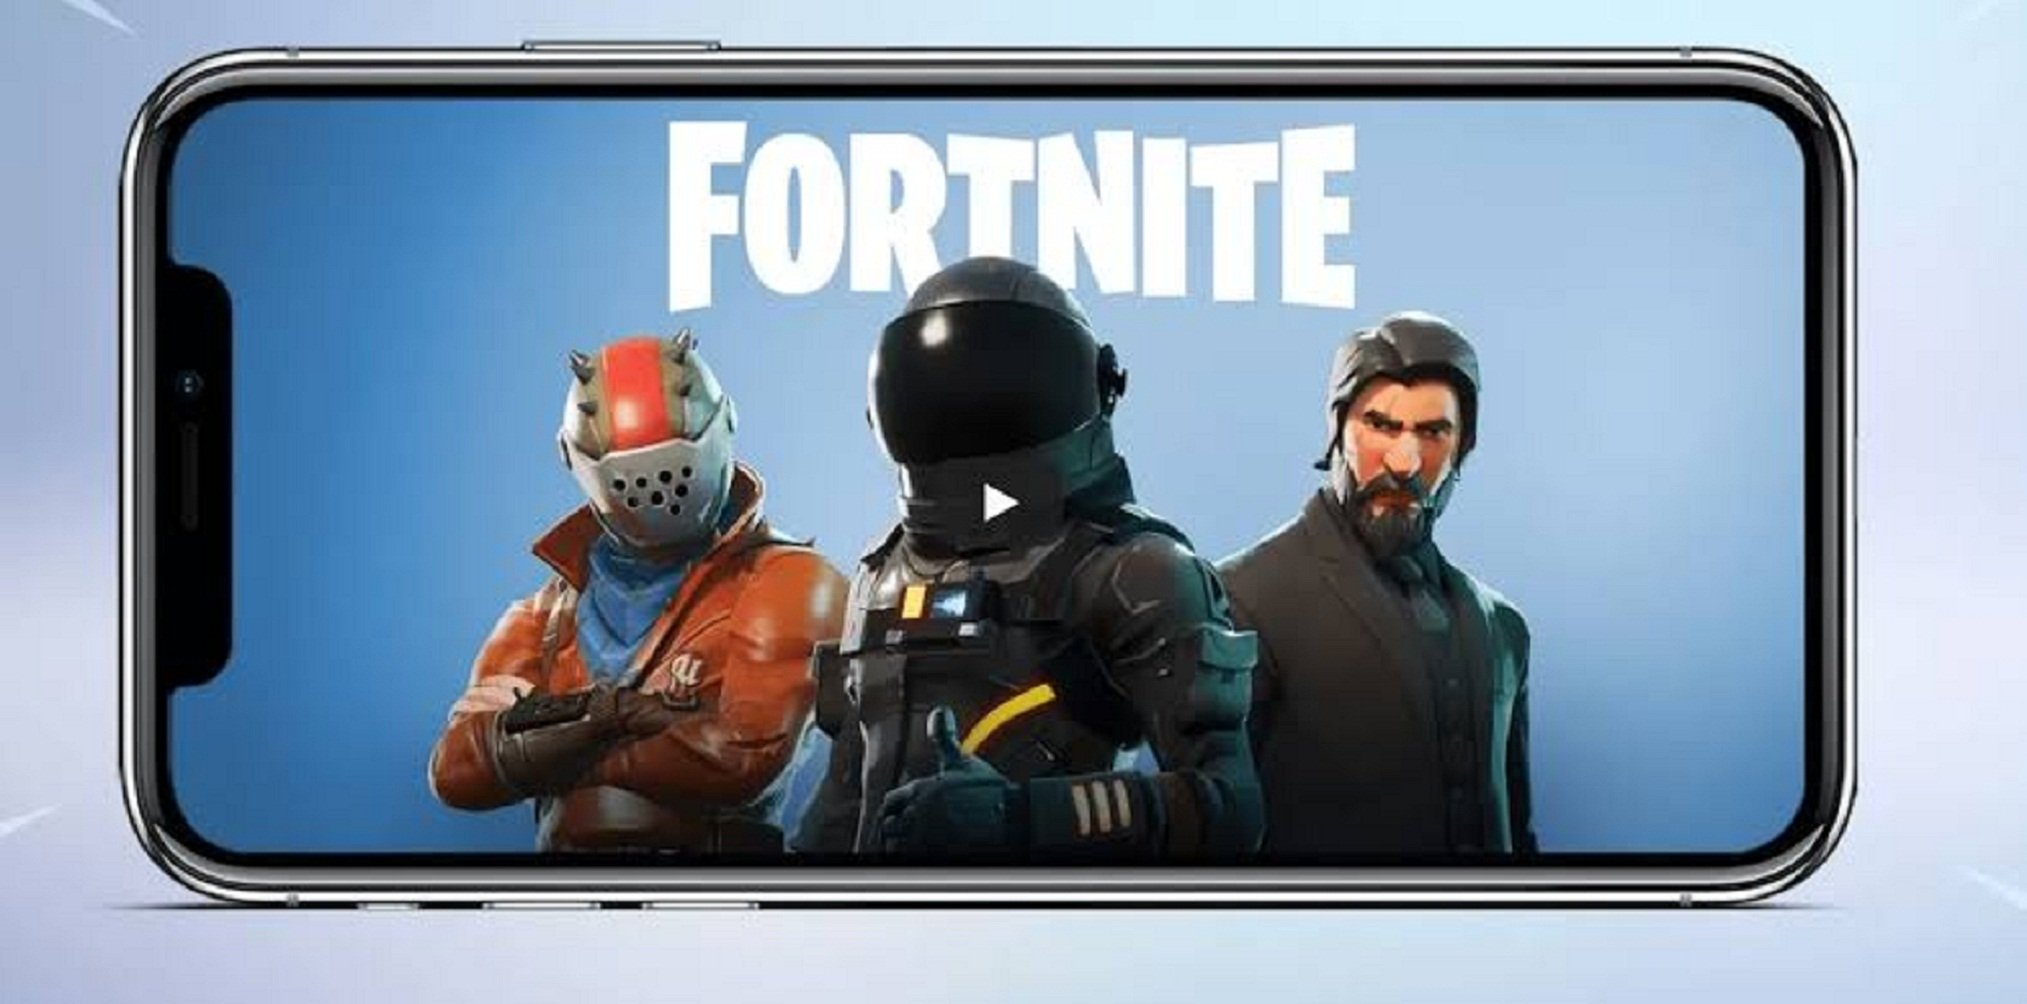 Fortnite Season 5 Live Event Was Impressive, Now With An 8 Hour Countdown To The Start Of Season 5